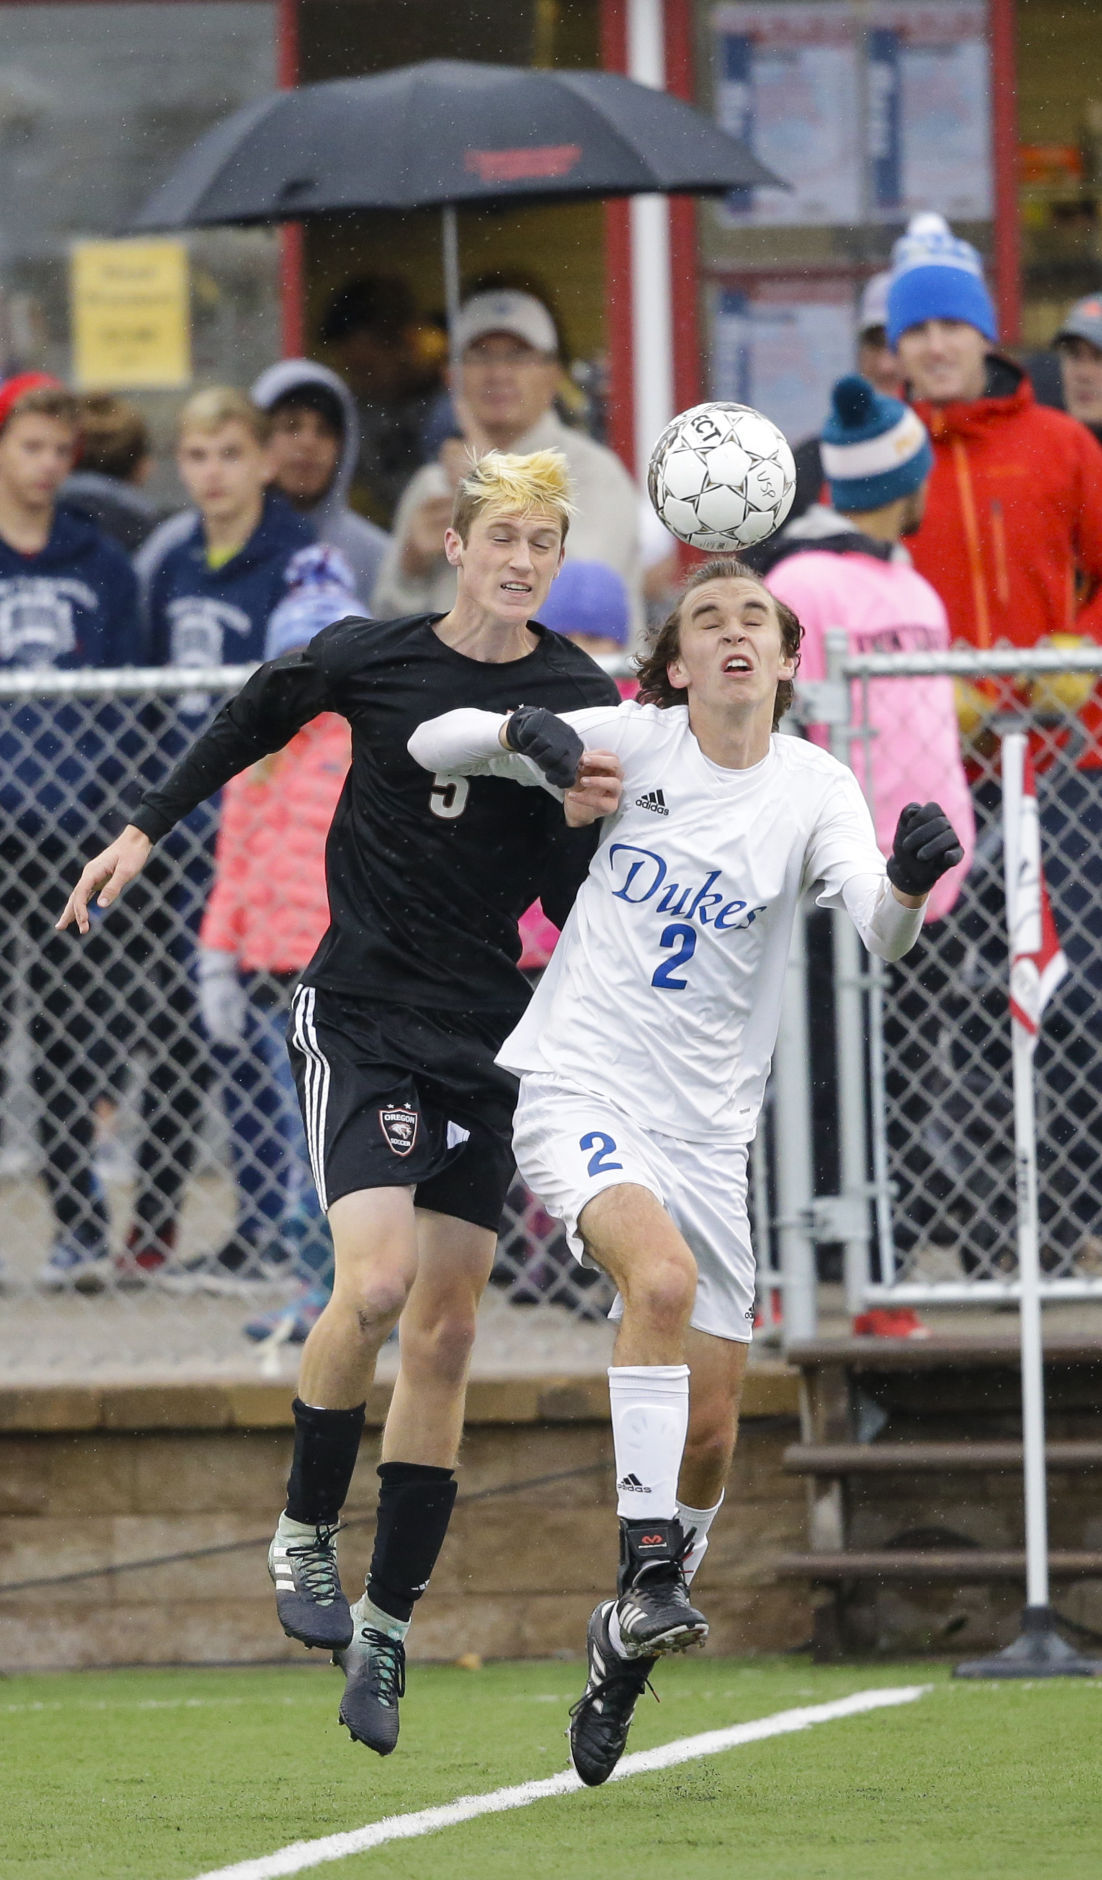 WIAA boys soccer photo: Oregon's Colin McCombs